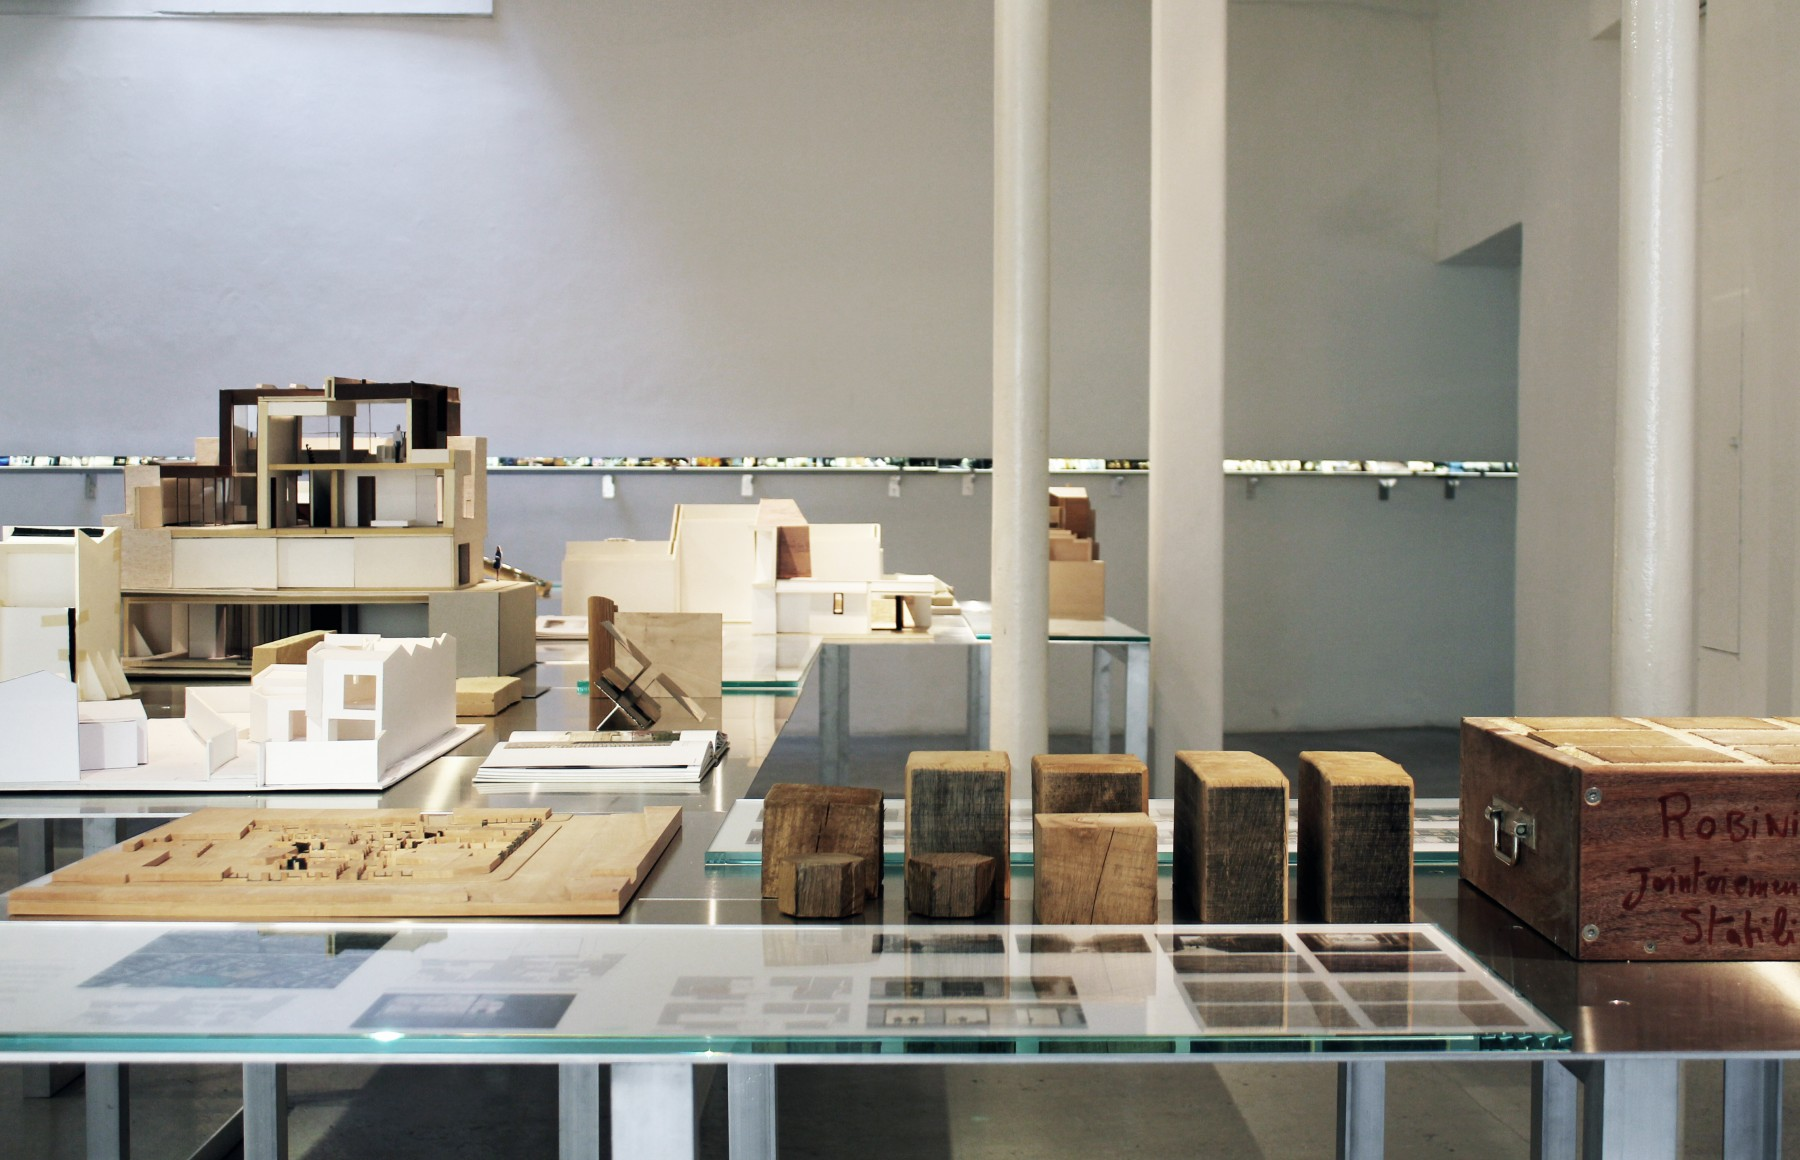 Jamie-Fobert-Architects-working-in-architecture-exhibition